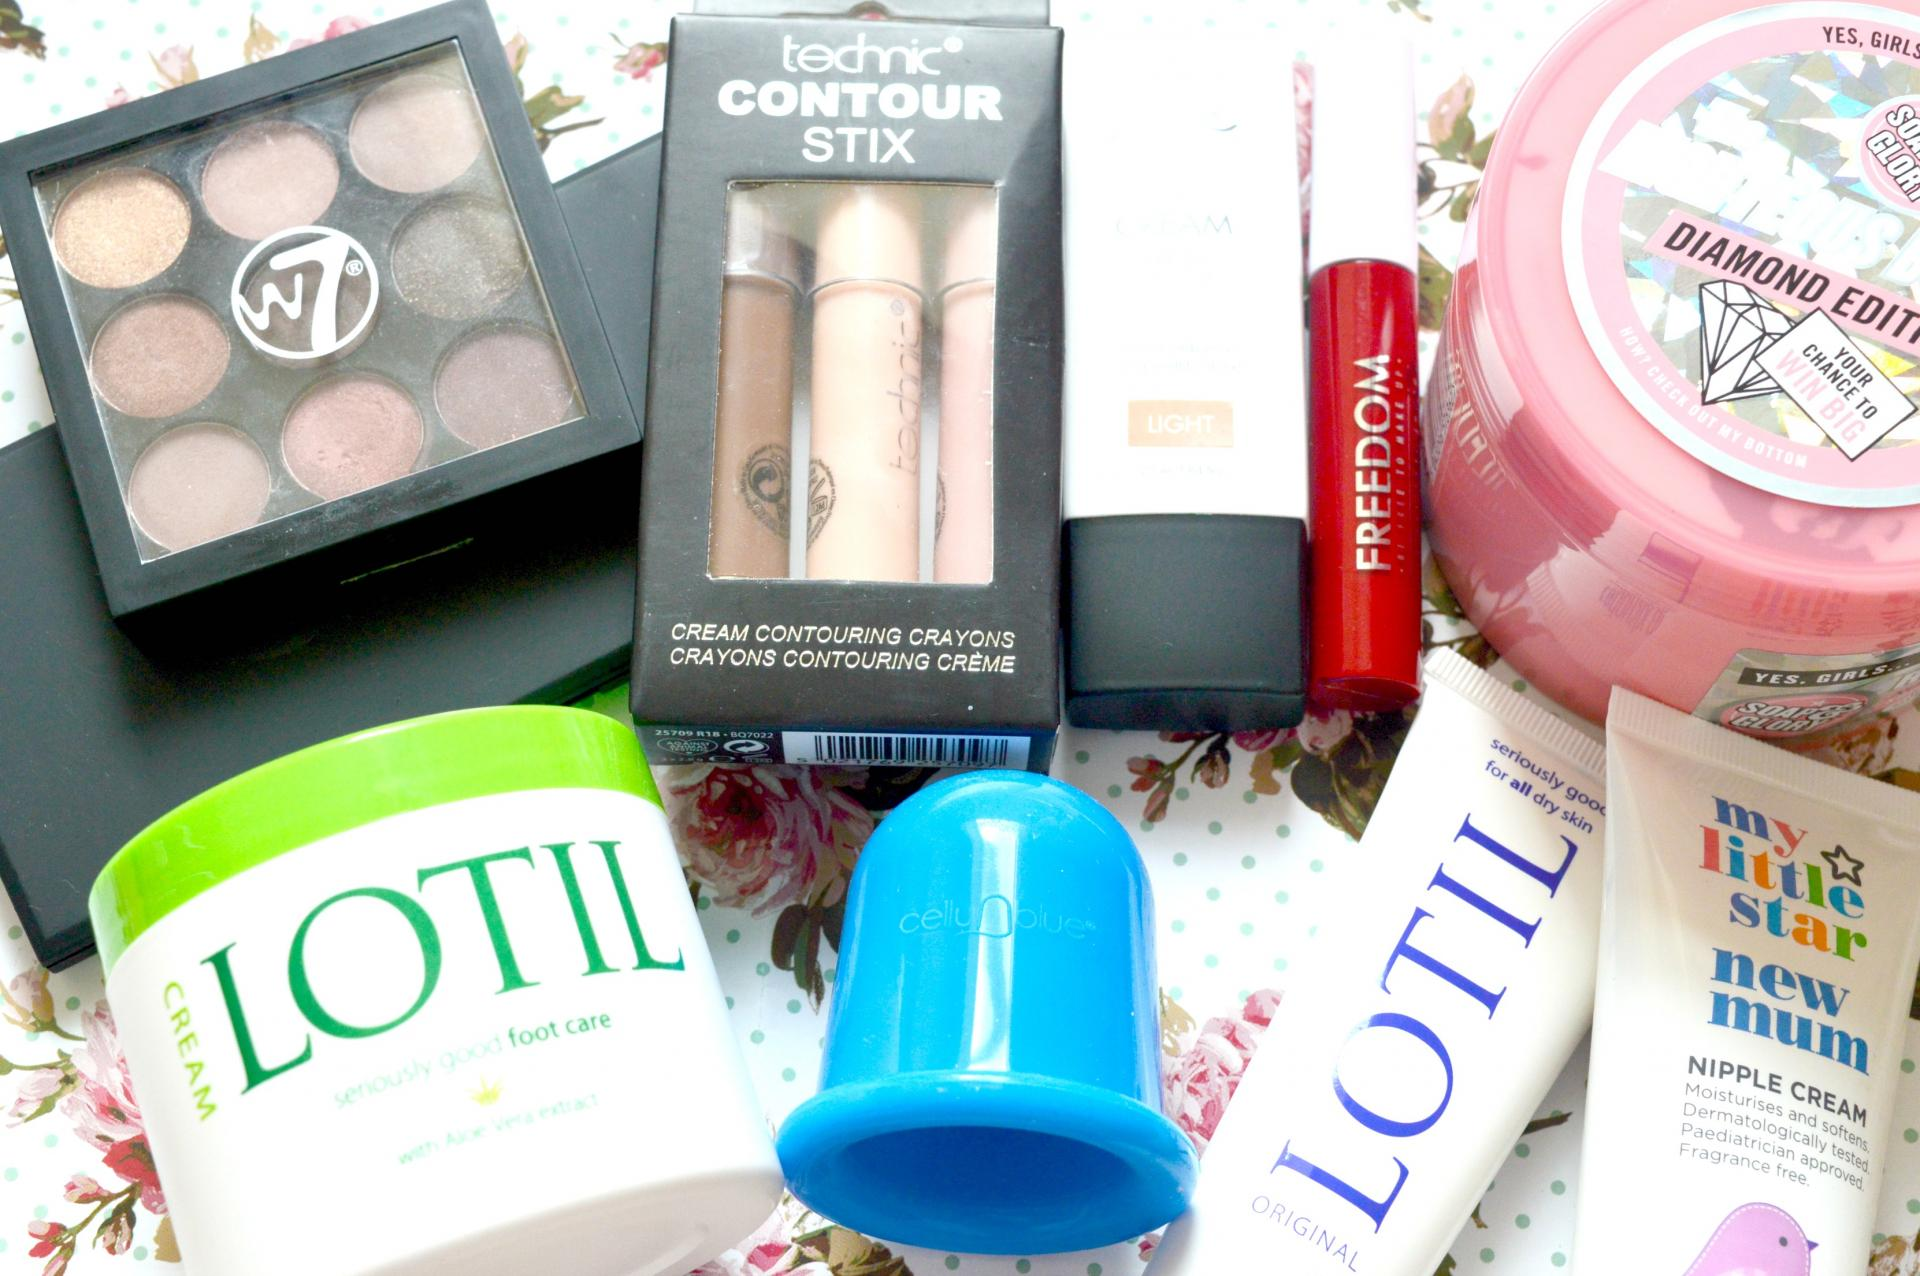 10 Newly Discovered Products I've Recently Tried | W7 The Naughty Nine Mid Summer Nights, Technic Contour Stix, Sleek Enchanted Forest Palette, Sleek CC Cream in Light, Freedom Pro Melts Lipgloss in Jammy Dodger, Soap and Glory Diamond Edition Righteous Butter, Lotil Original, Lotil Foot Care Cream, CelluBlue and Superdrug My Little Star New Mum Nipple Cream